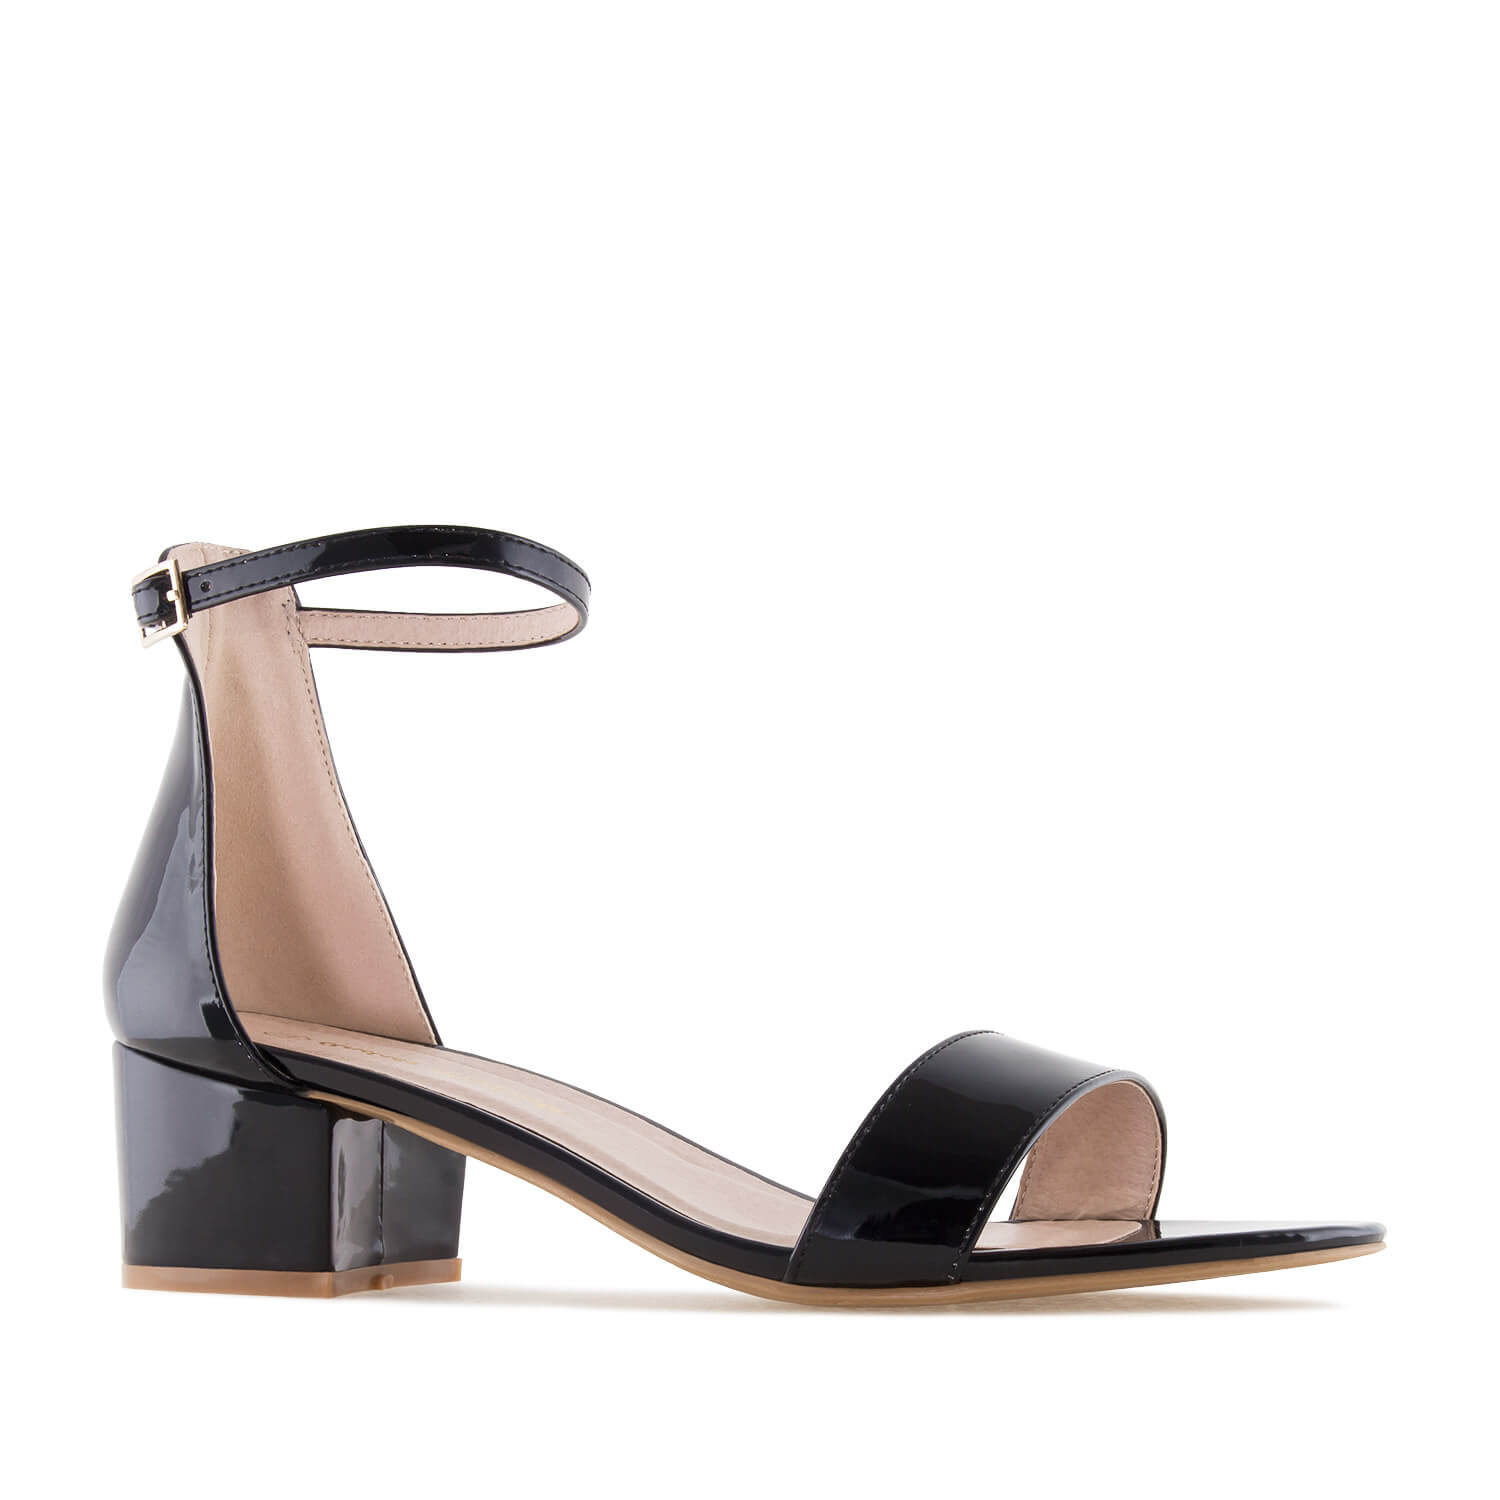 Black Patent Low Heeled Sandals